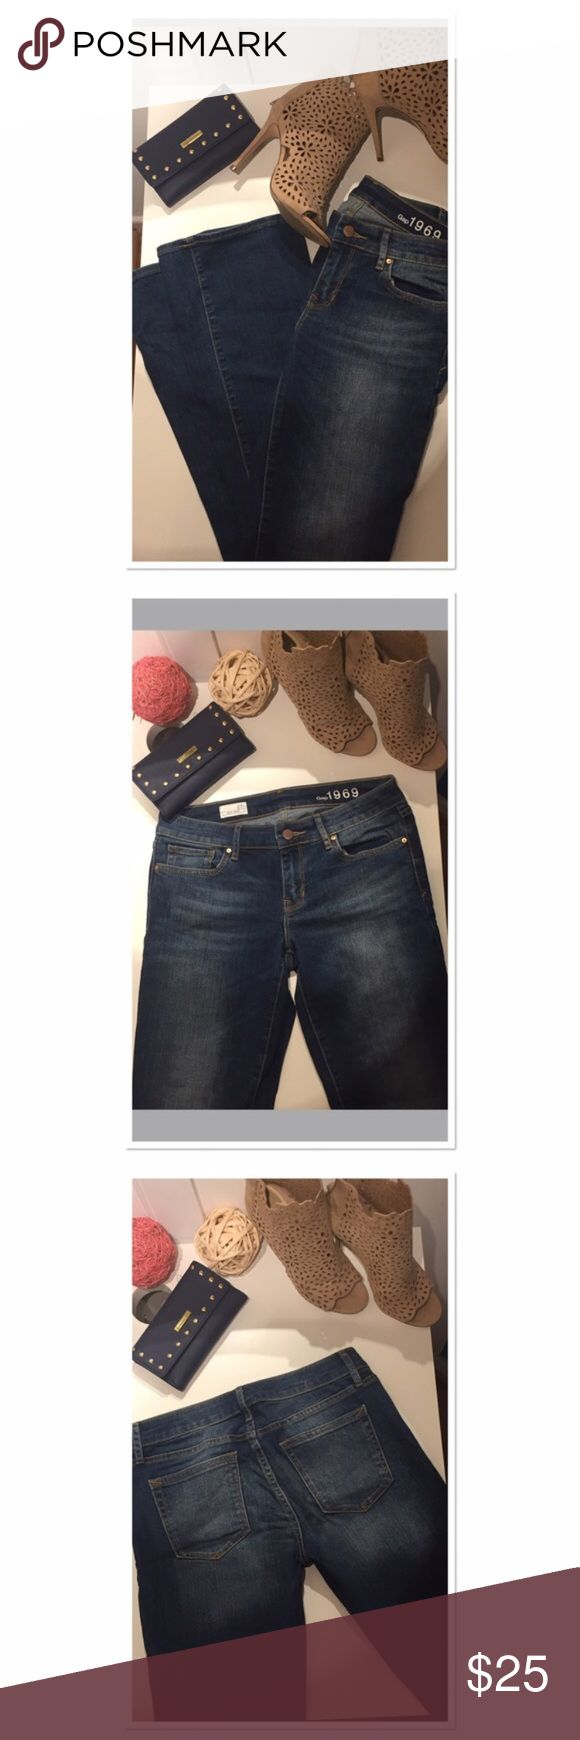 Gap jeans bootcut straight regular fit size 28R These Gap bootcut jeans hug your body perfectly! Very comfortable, only worn couple times- great condition. Size 27 R. Approximately: Inseam 30, waist 30 GAP Jeans Boot Cut